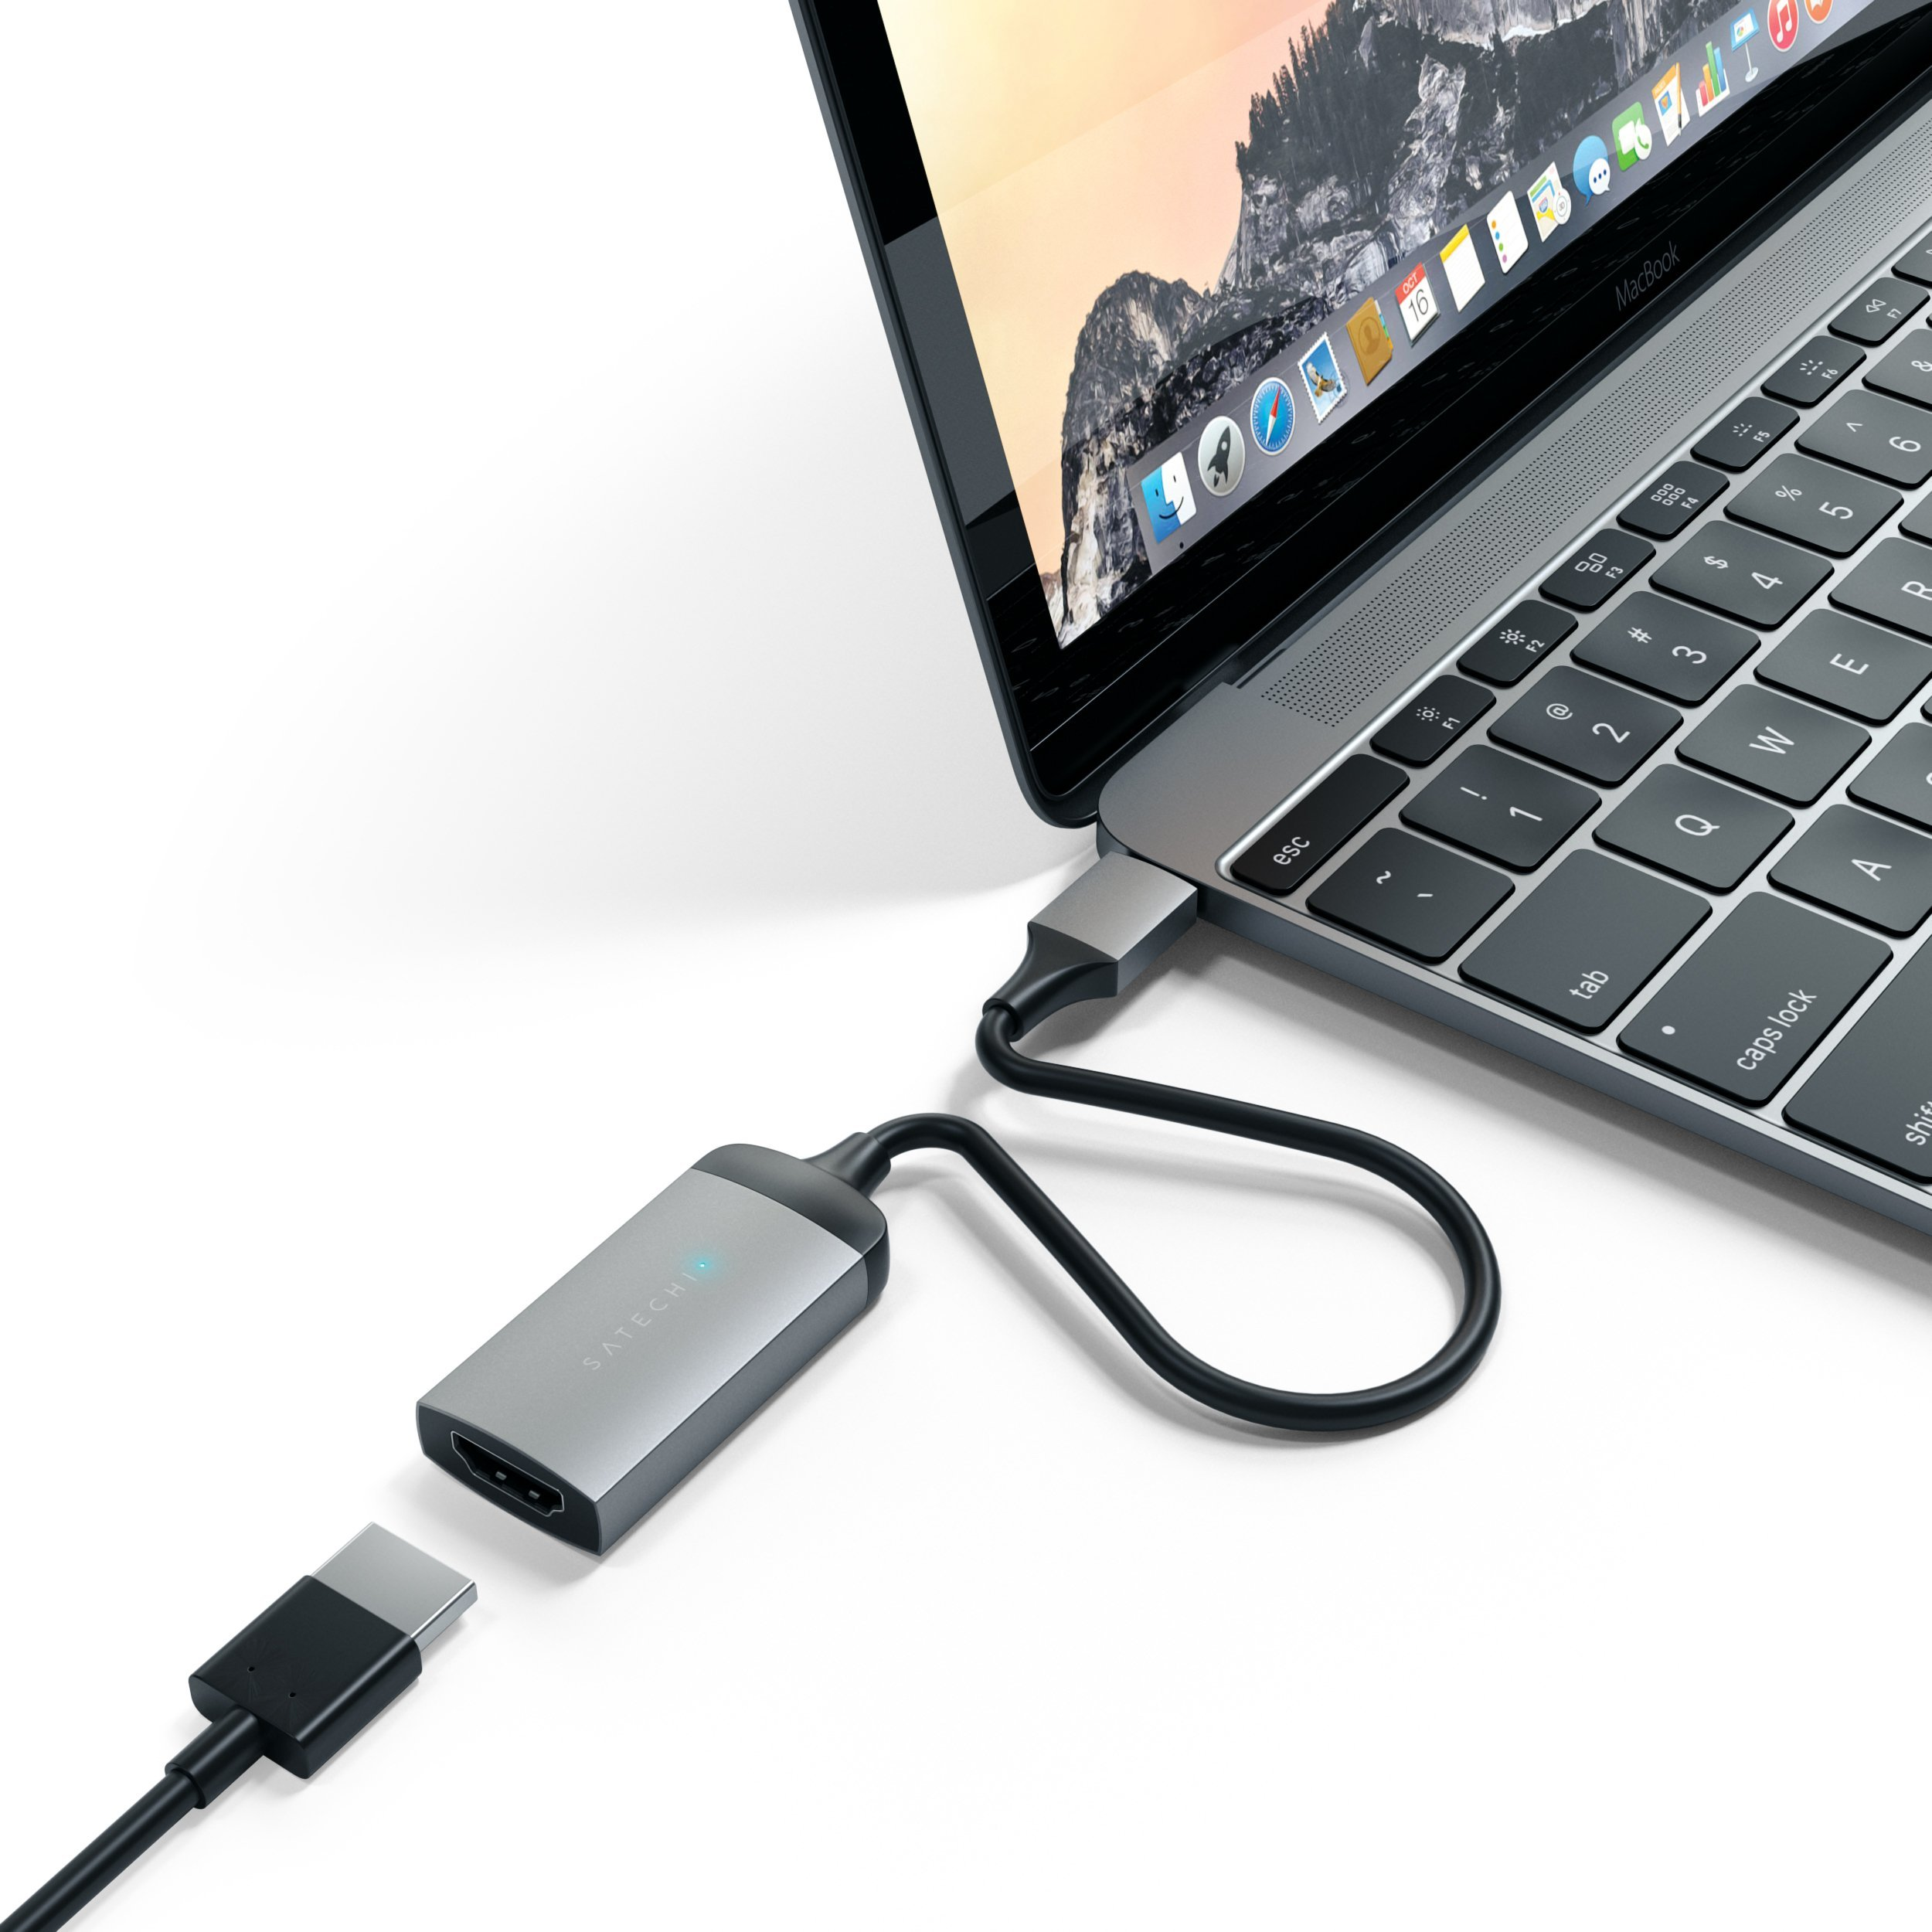 Satechi Aluminum Type-C HDMI Adapter 4K (60Hz) - Compatible with 2020 MacBook Pro, 2020 MacBook Air, 2020 iPad Pro and More (Space Gray)